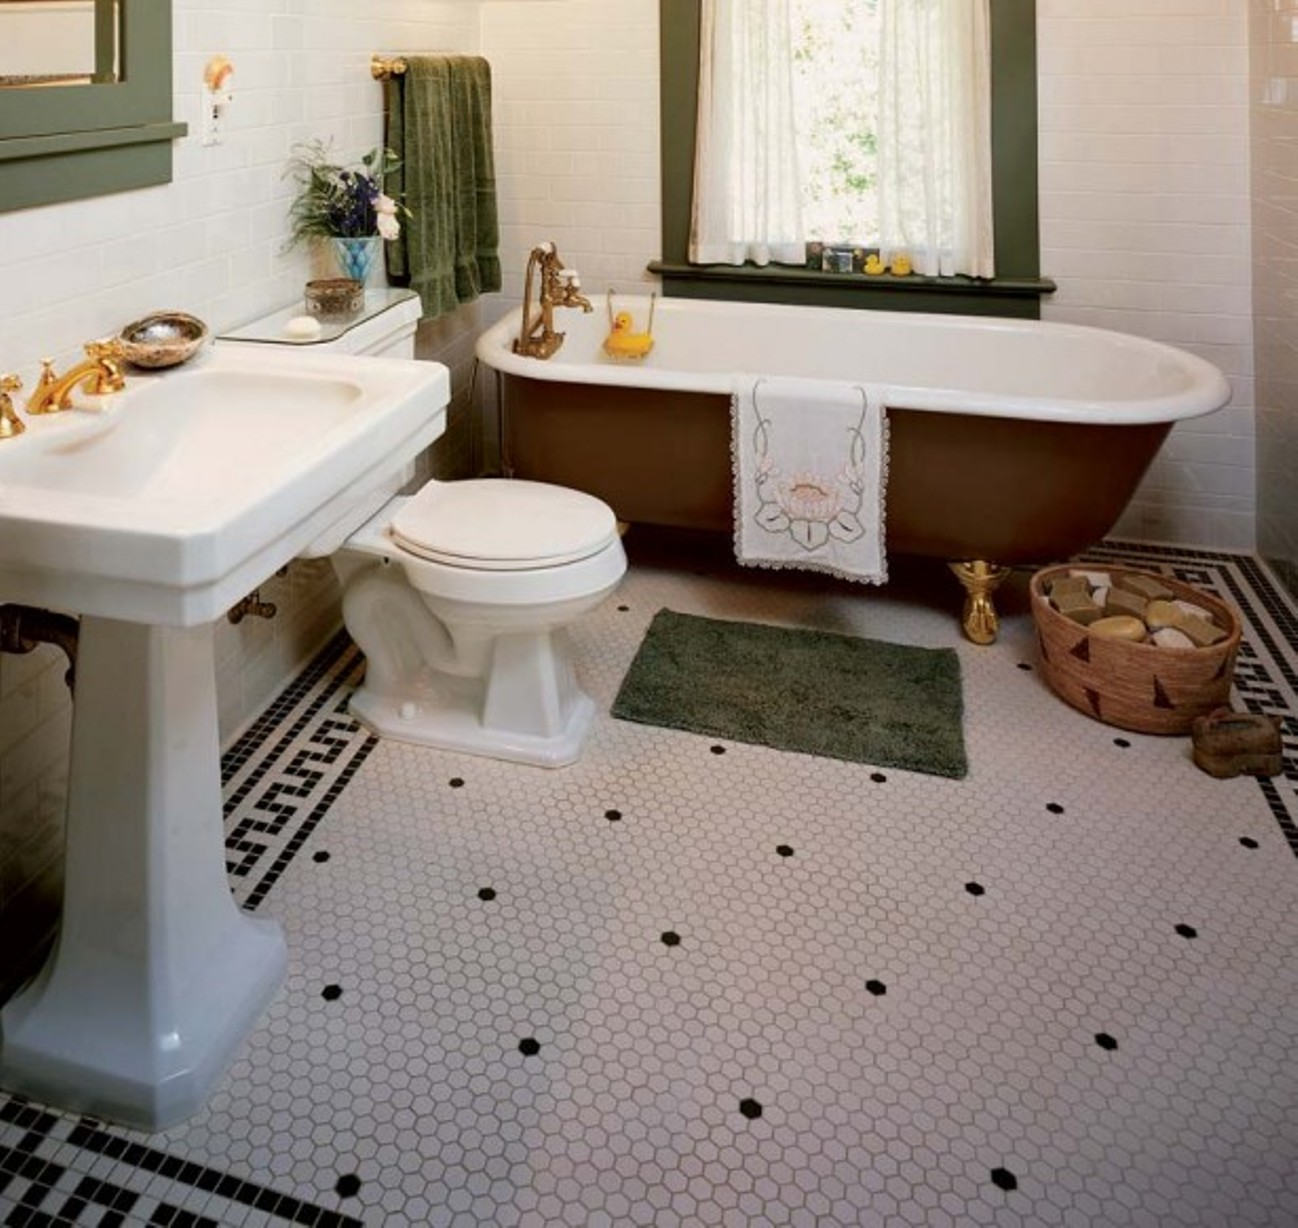 Bathroom Floor Tiling Ideas: 30 Ideas On Using Hex Tiles For Bathroom Floors